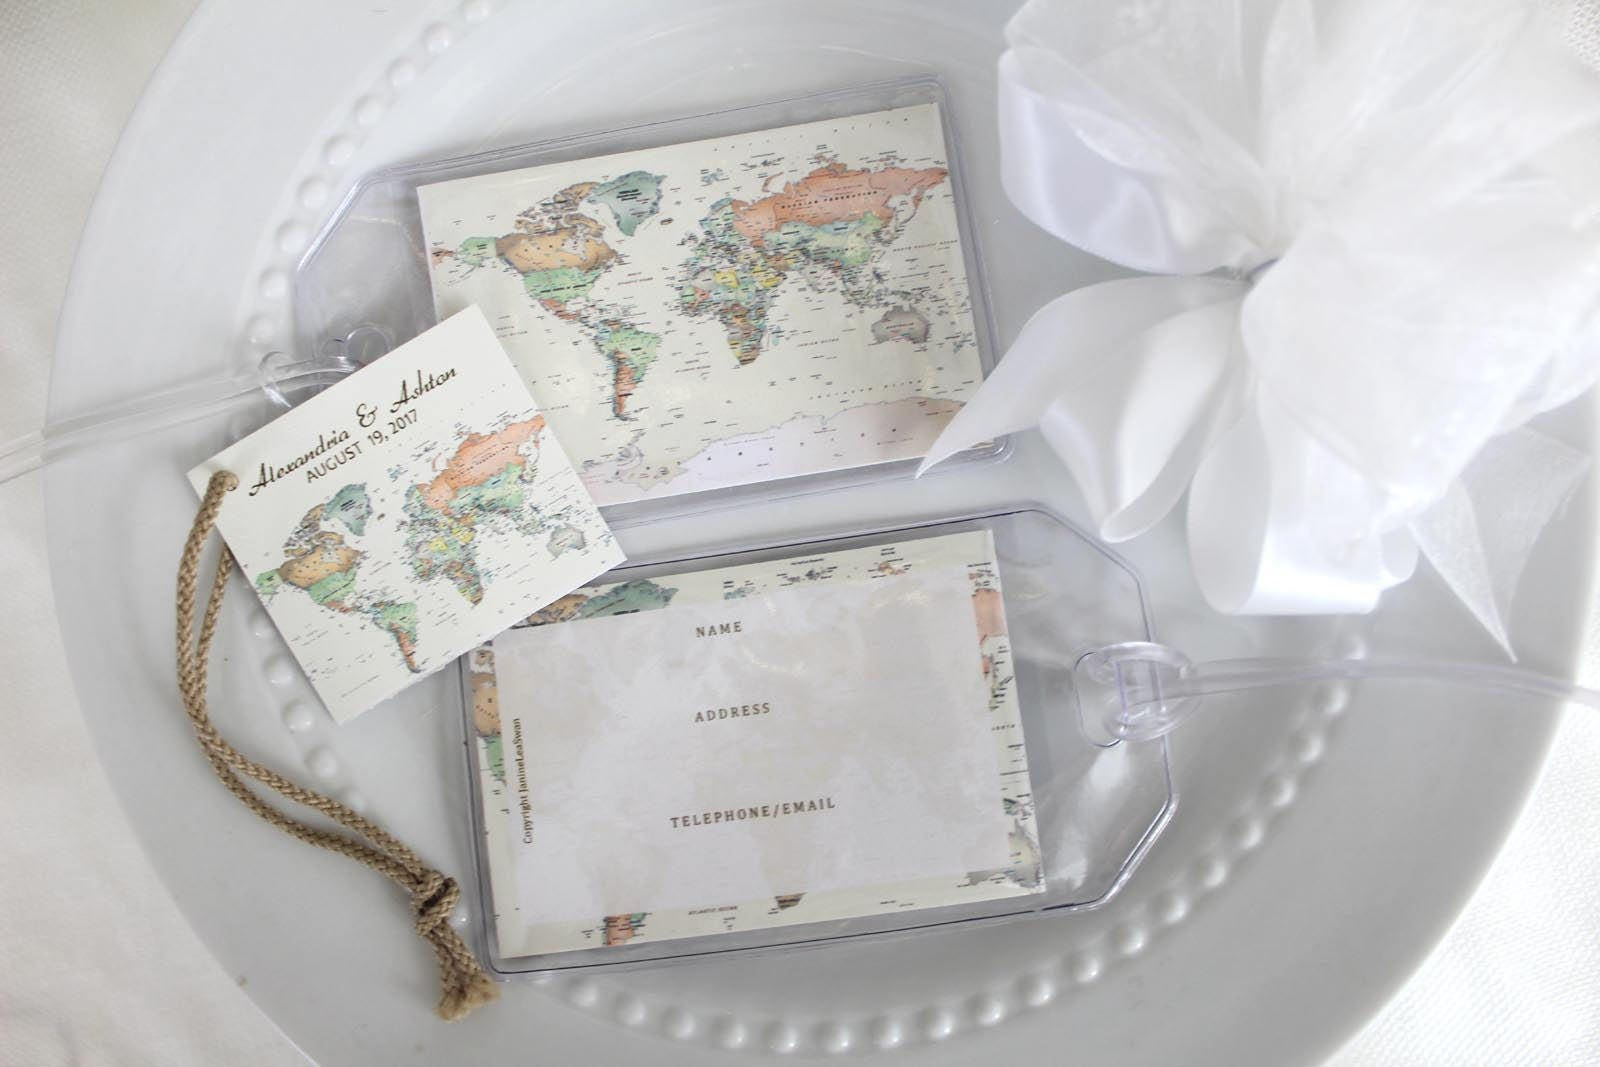 24 Destination Travel World Map Wedding favors and Gifts